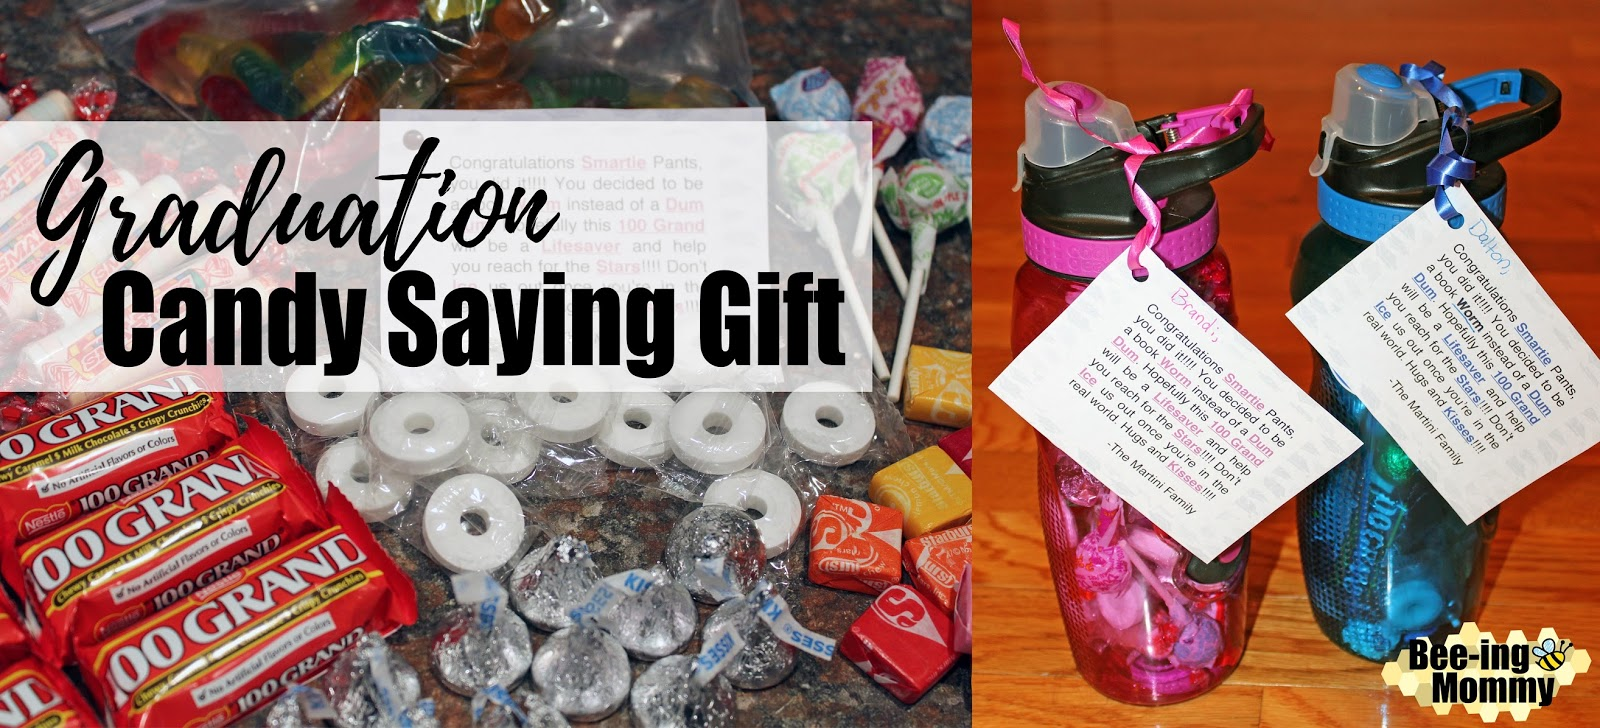 Bee-ing Mommy Blog: Graduation Candy Saying Water Bottle Gift